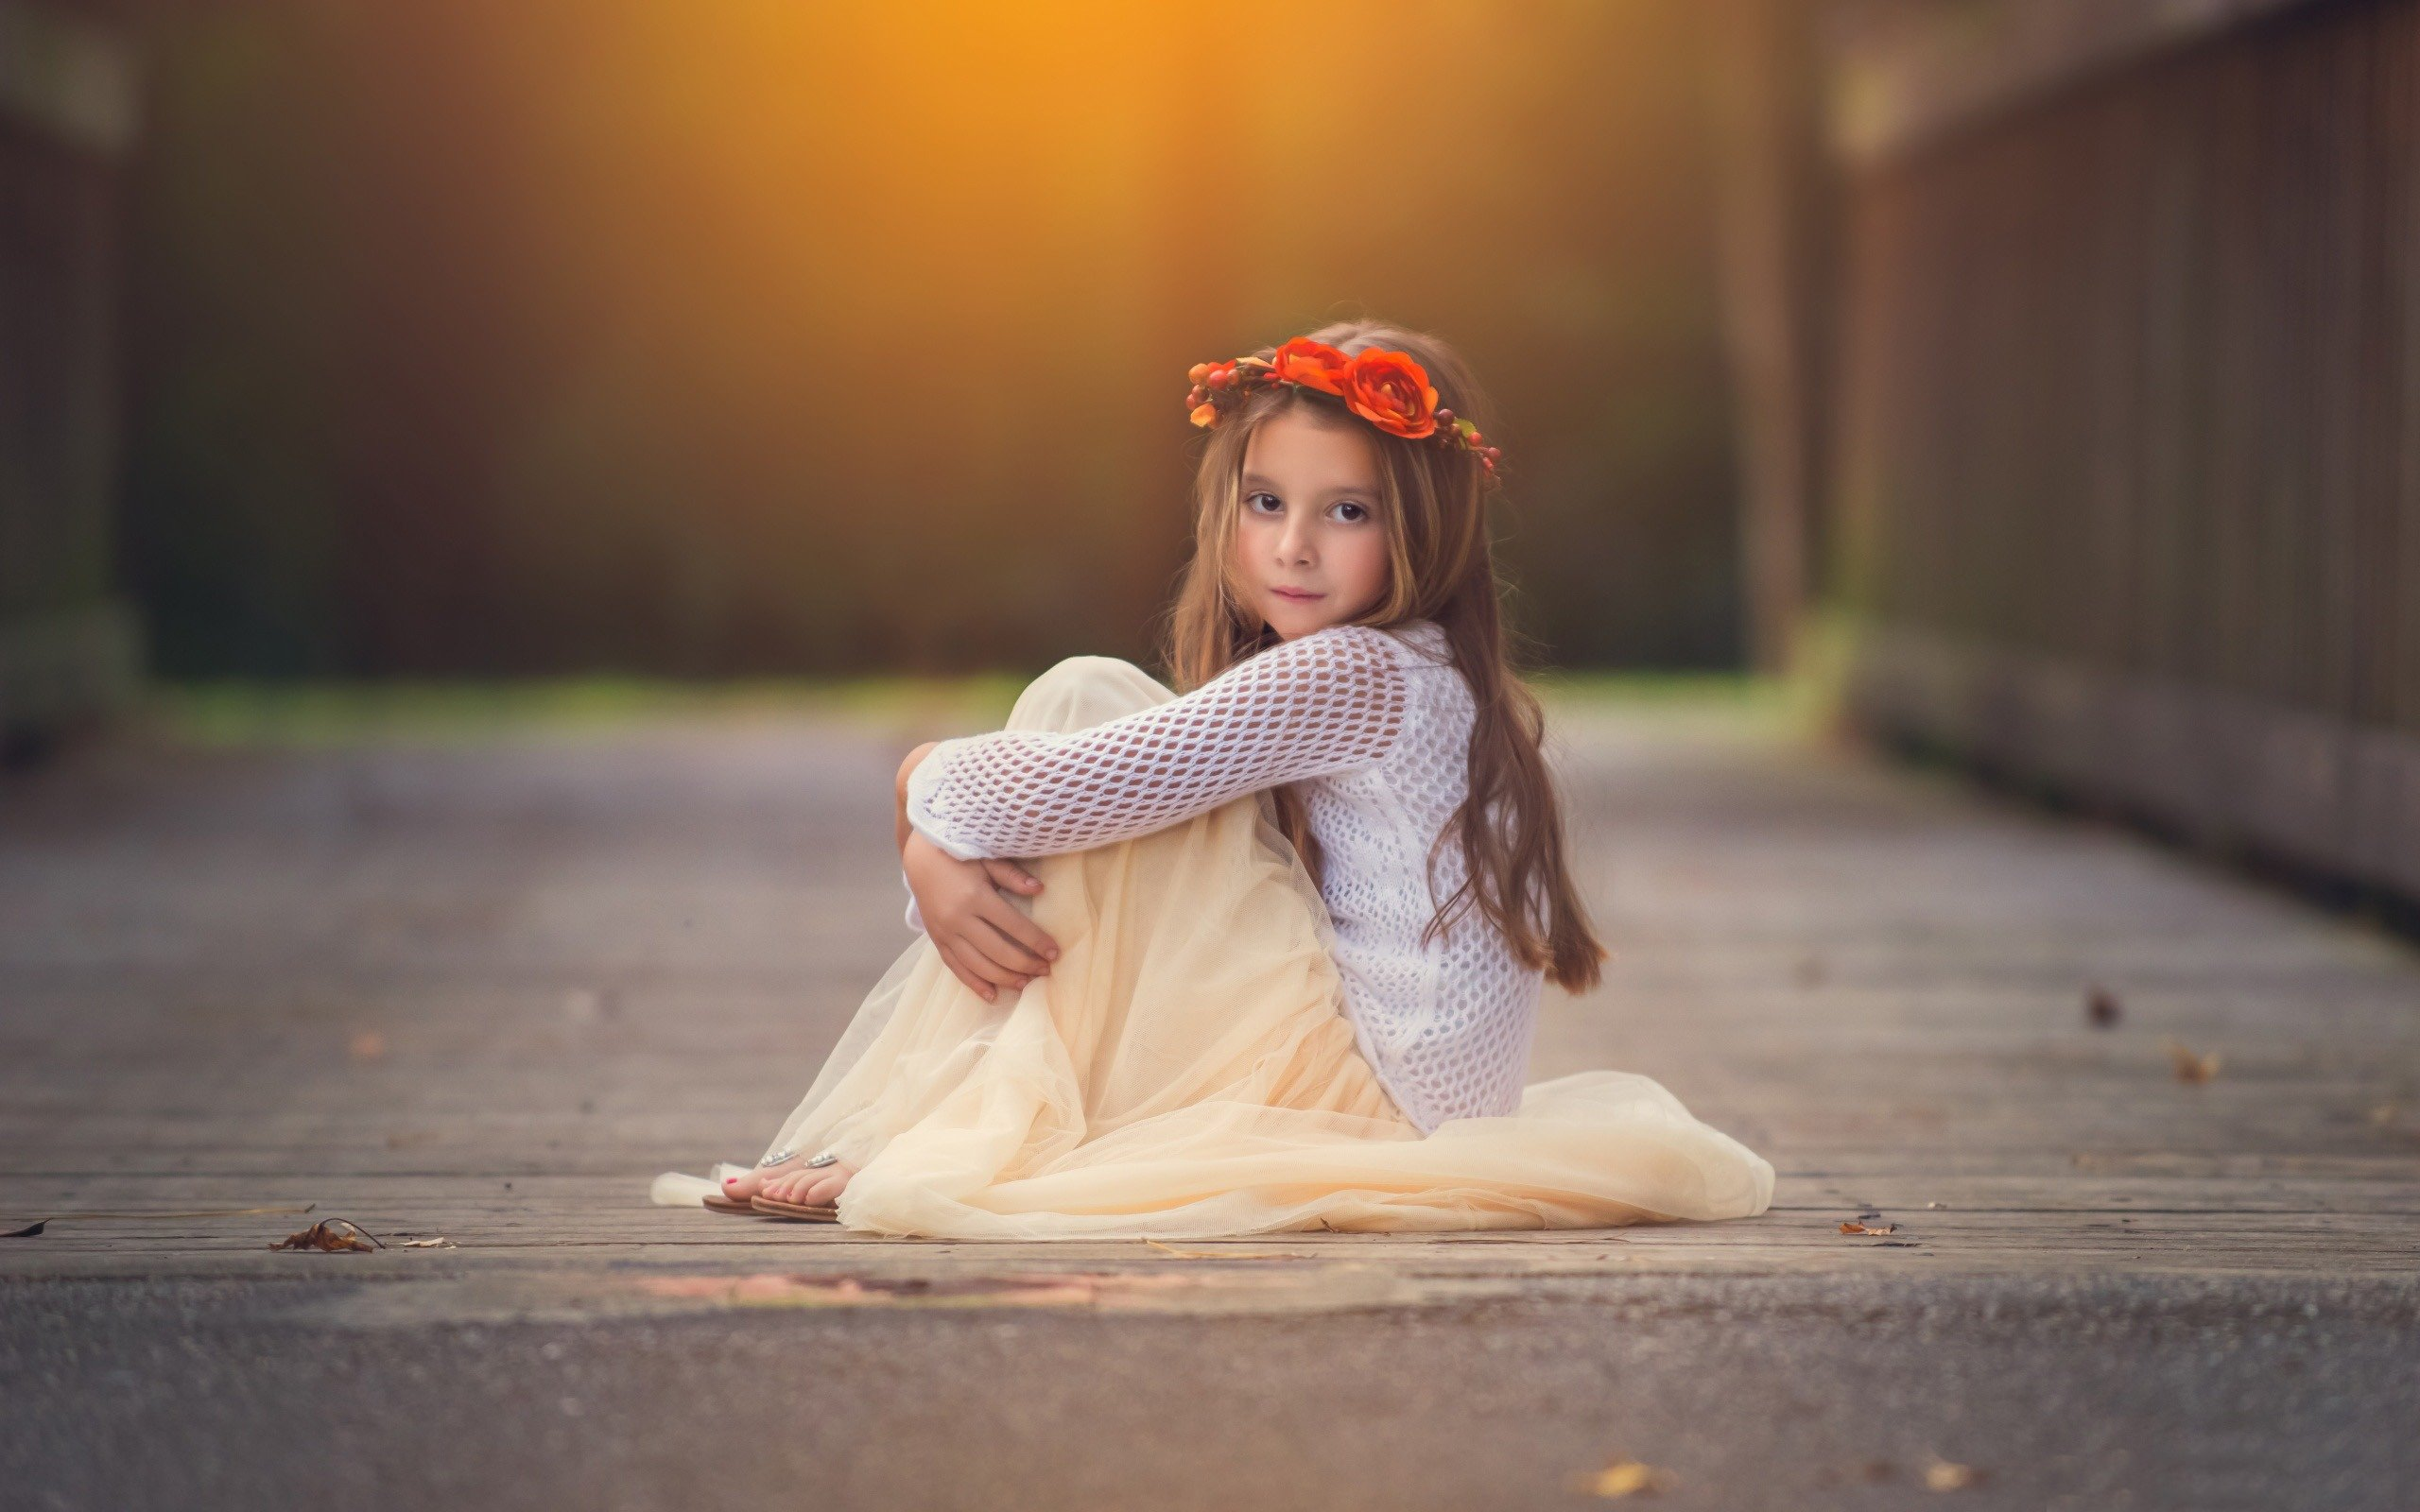 Soft child kids girl mood wallpaper | 2560x1600 | 315244 | WallpaperUP